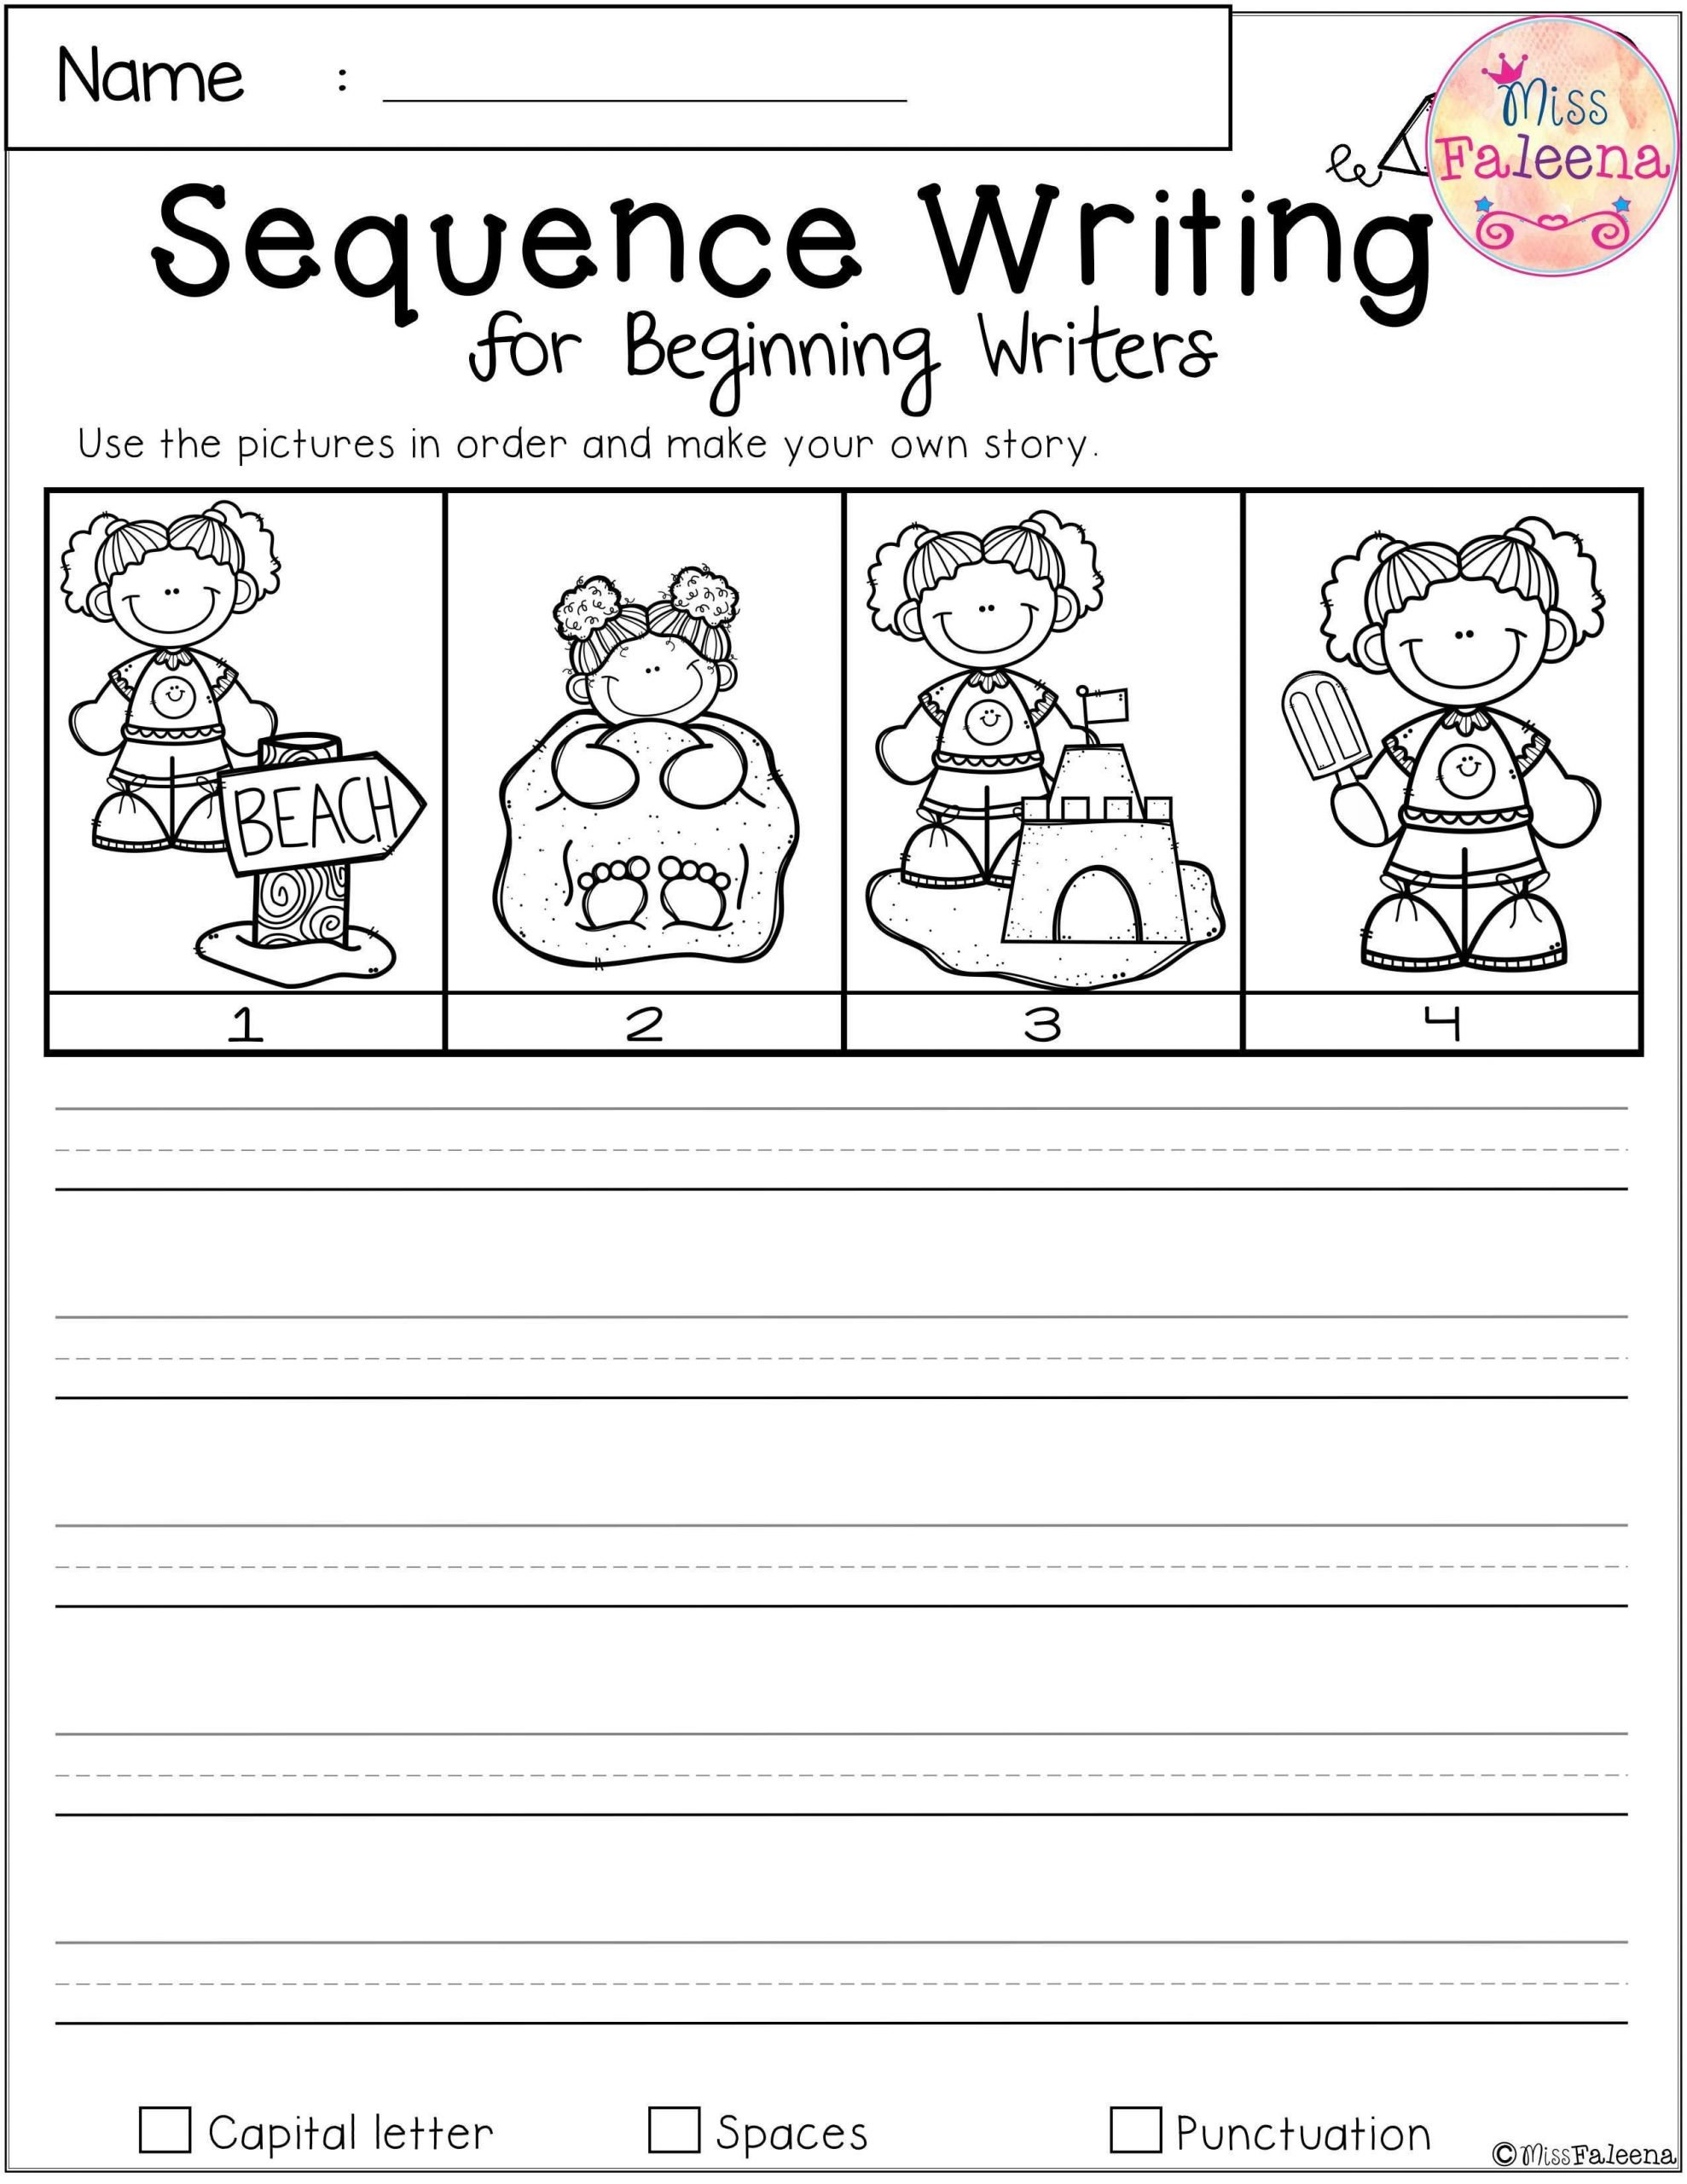 Sequencing Story Worksheets Free Sequence Writing for Beginning Writers